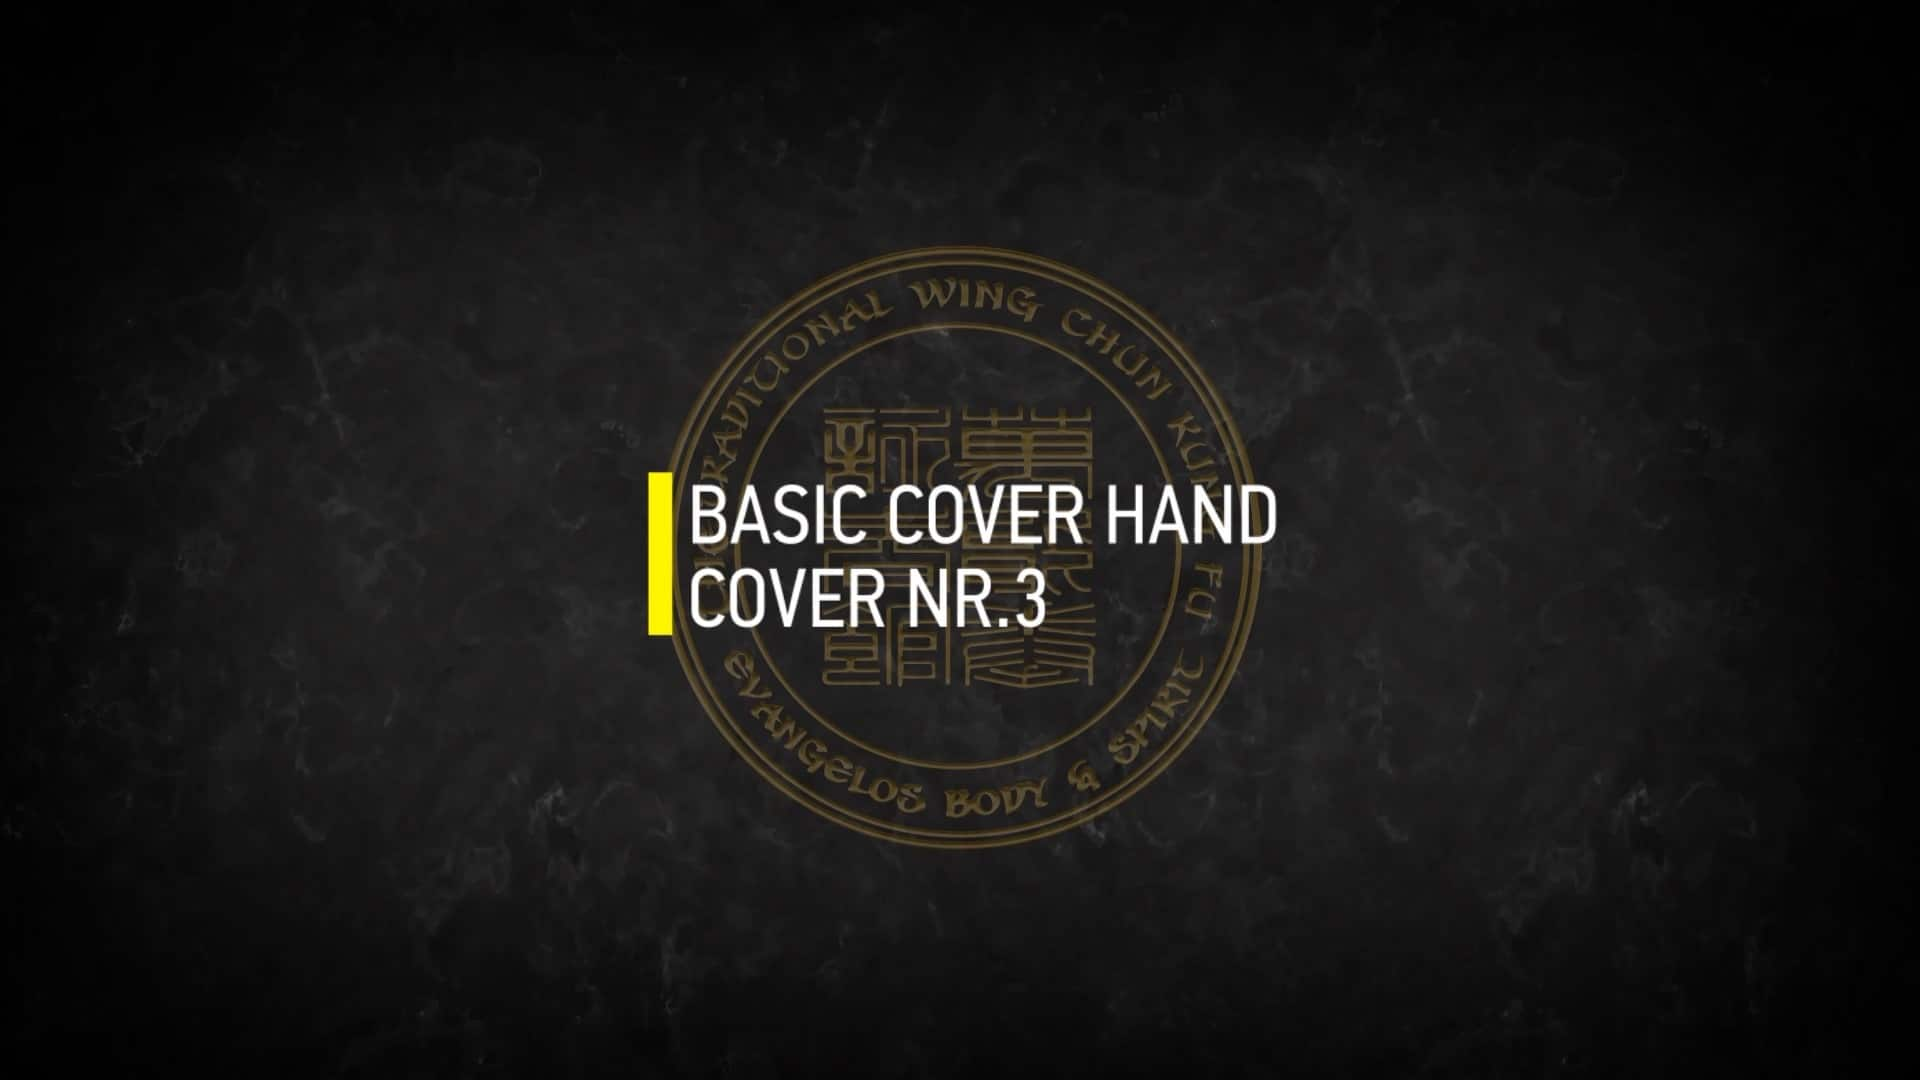 BASIC COVER HAND COVER NR.3